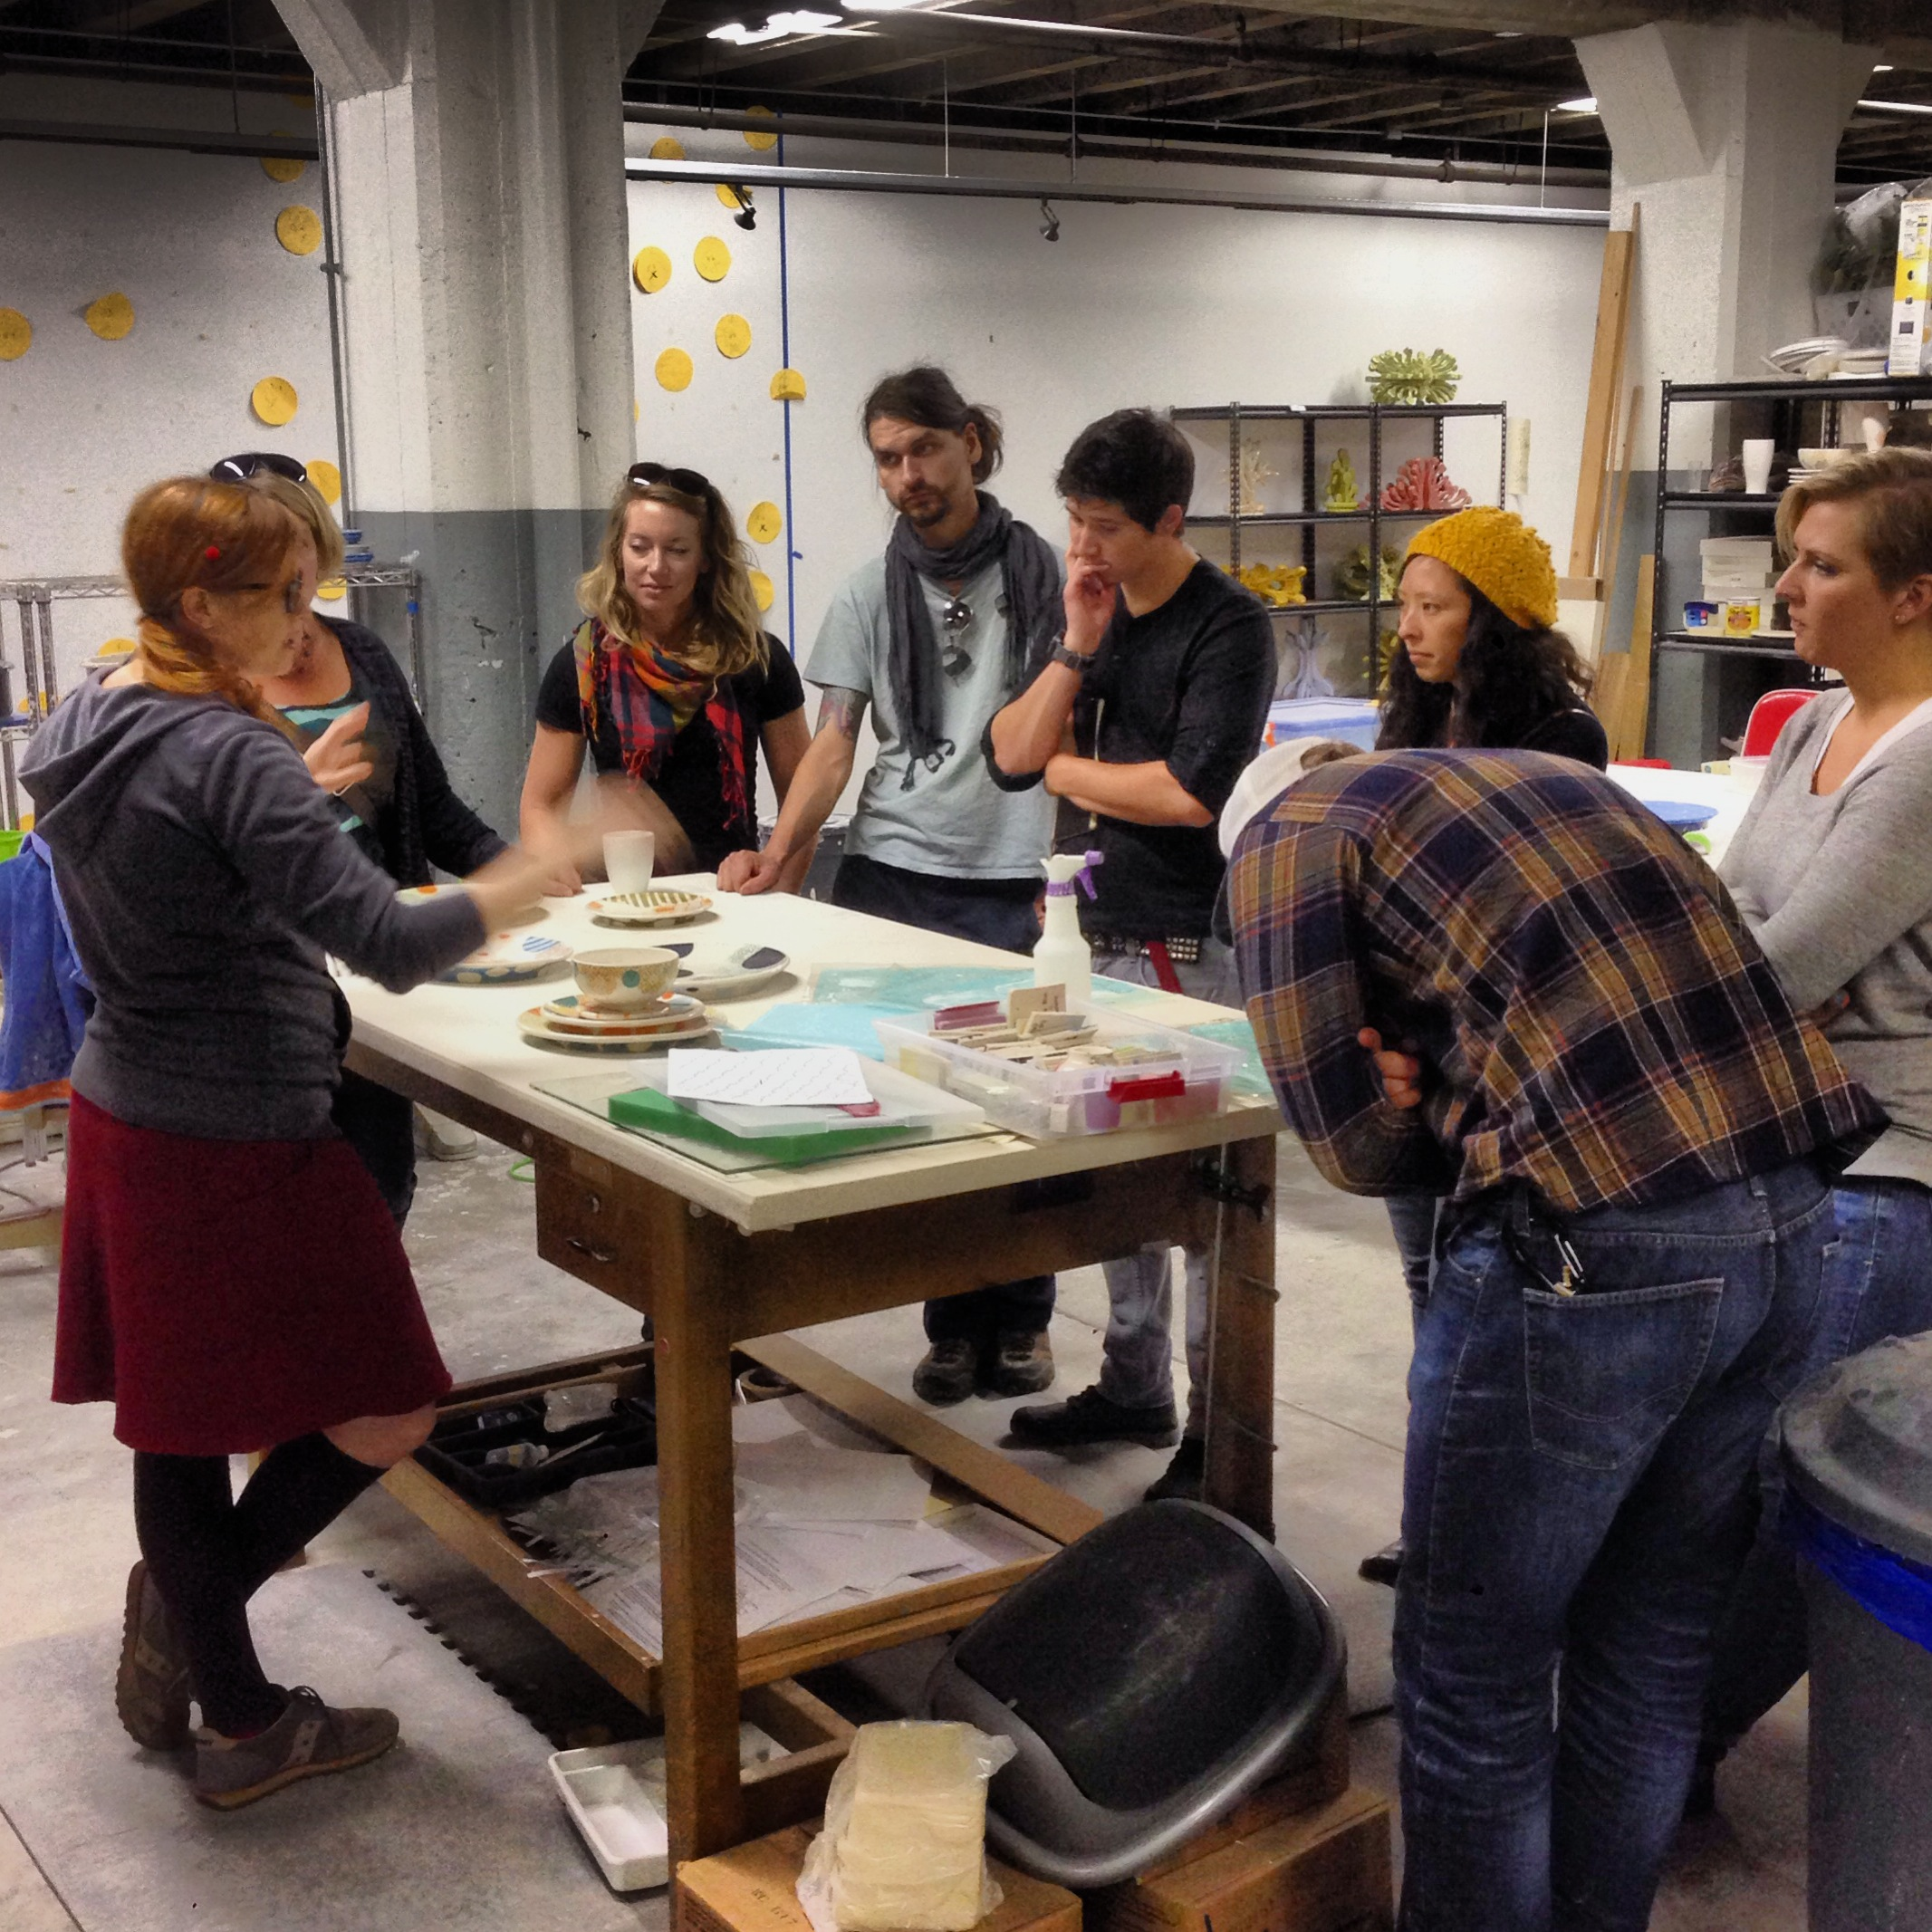 Later in the day, Meredith walked us through her process and the shared studio.